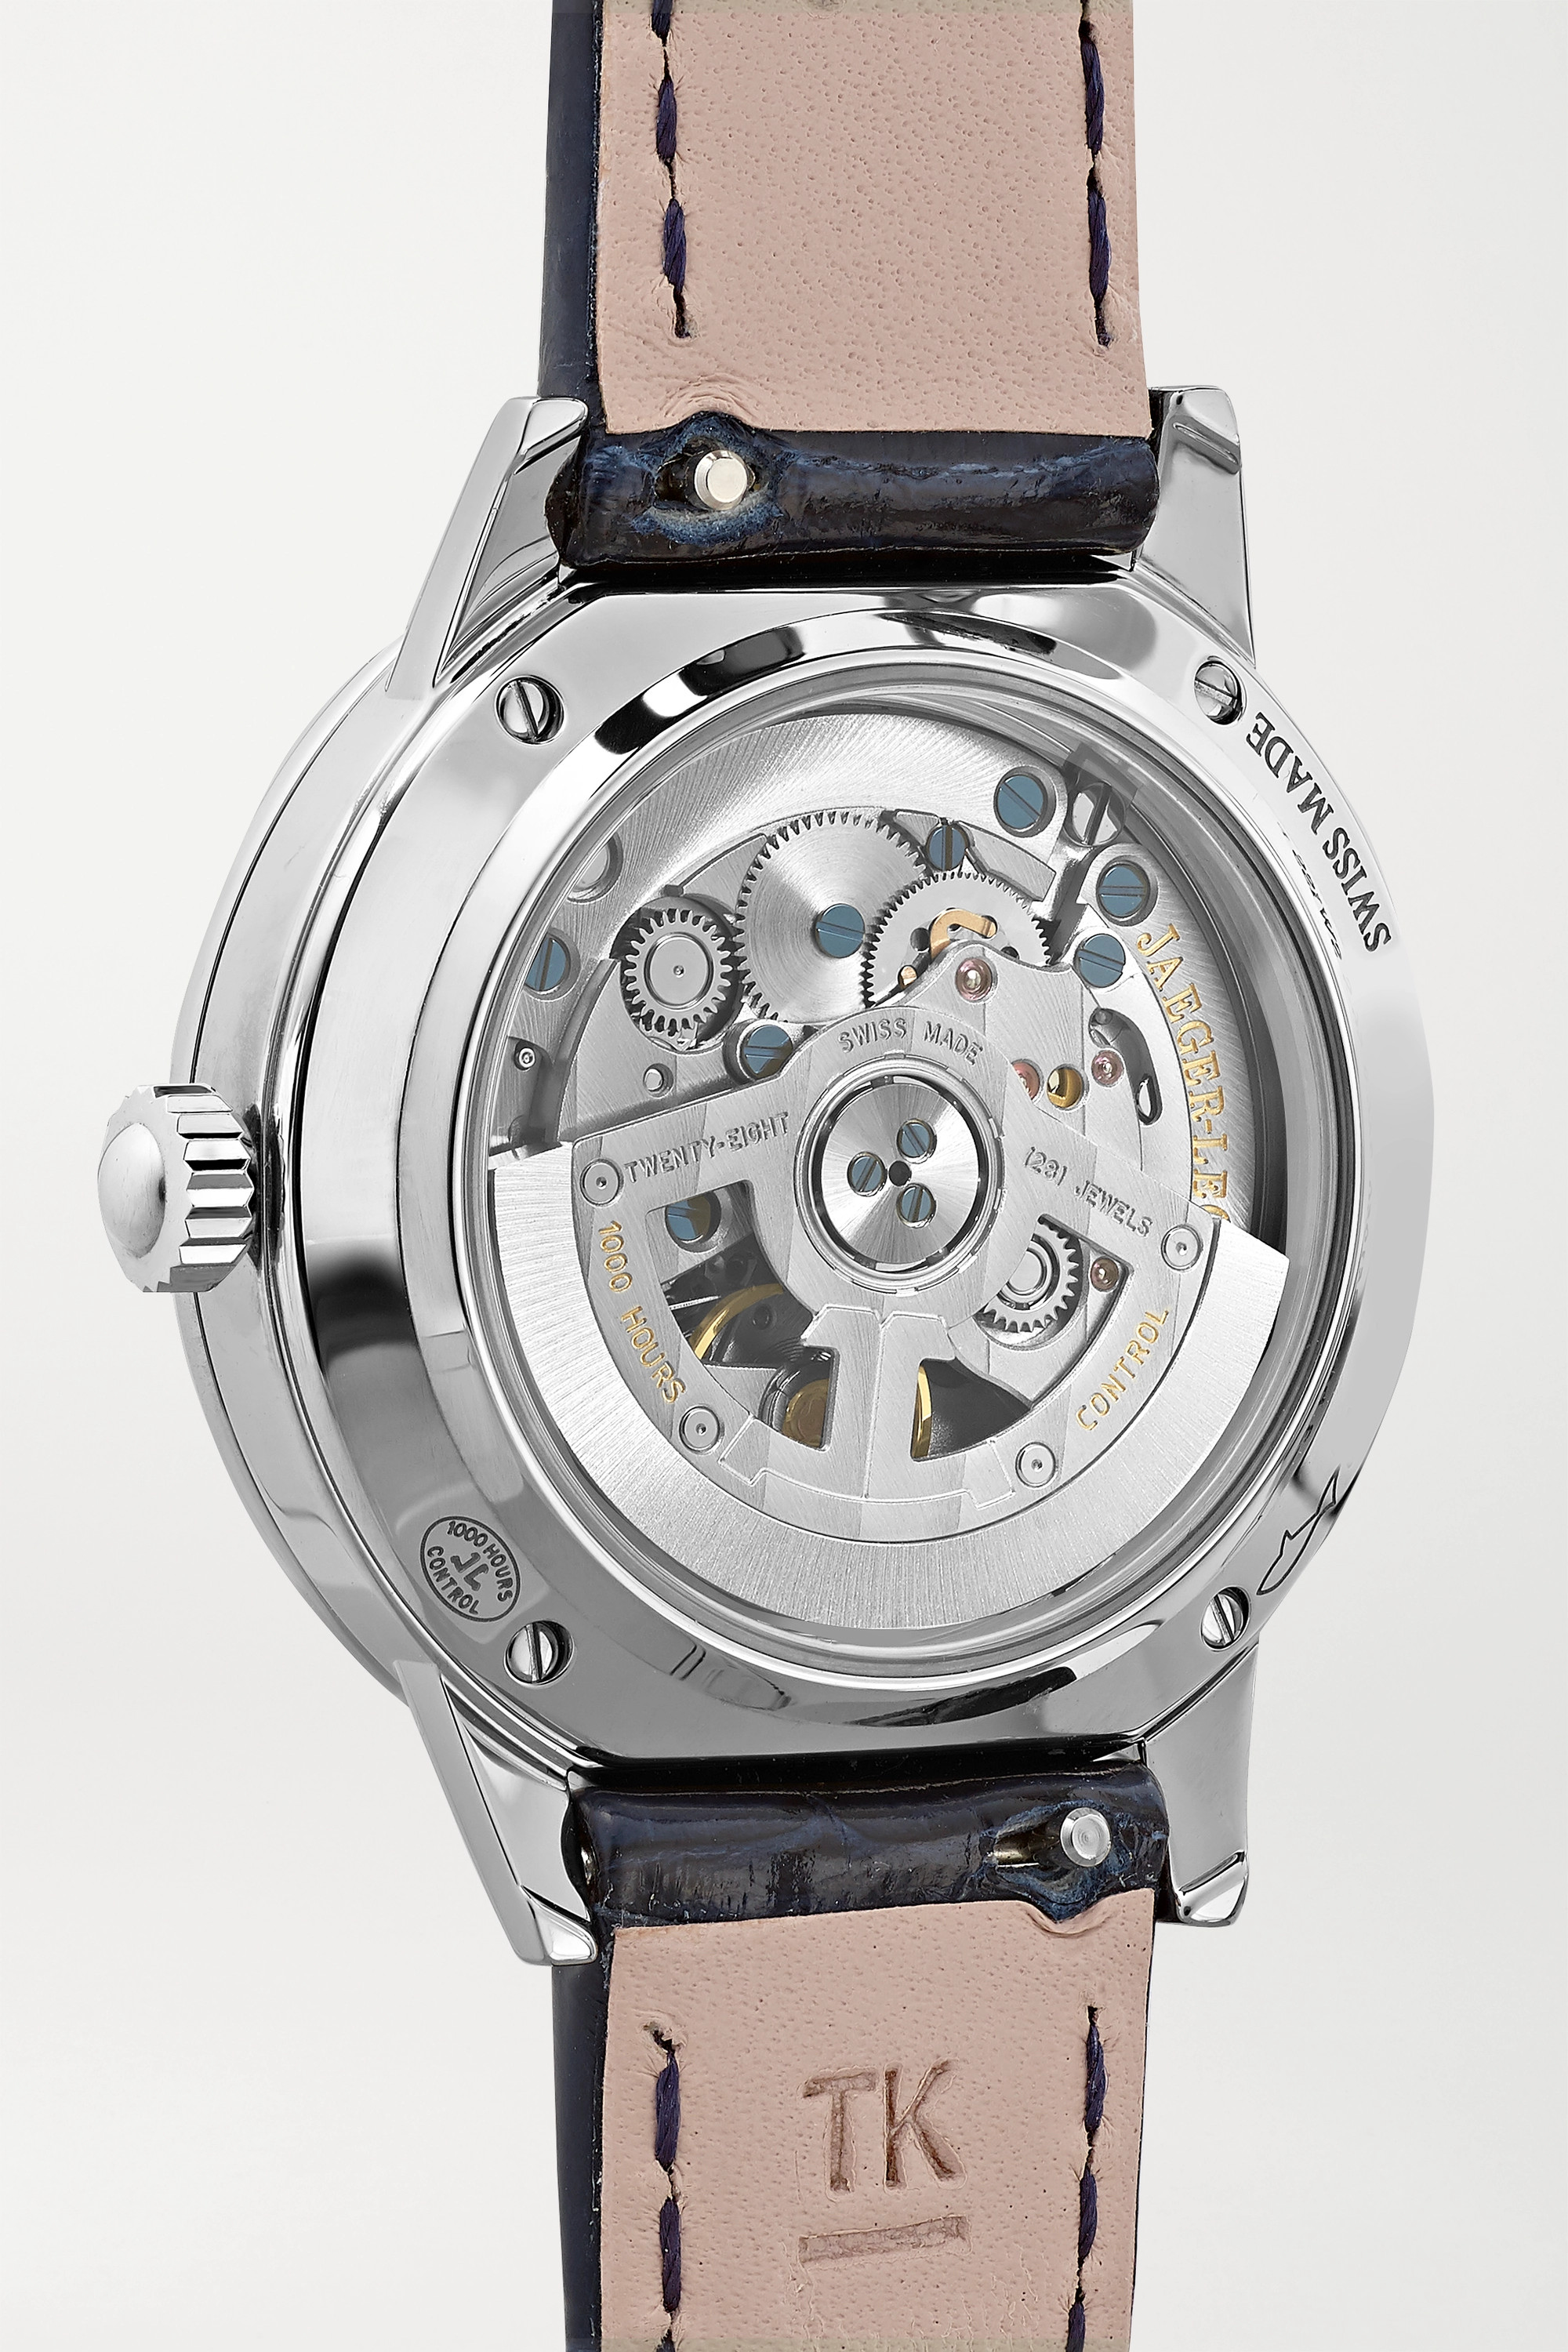 Jaeger-LeCoultre Rendez-Vous Night & Day 29mm small stainless steel, alligator and diamond watch